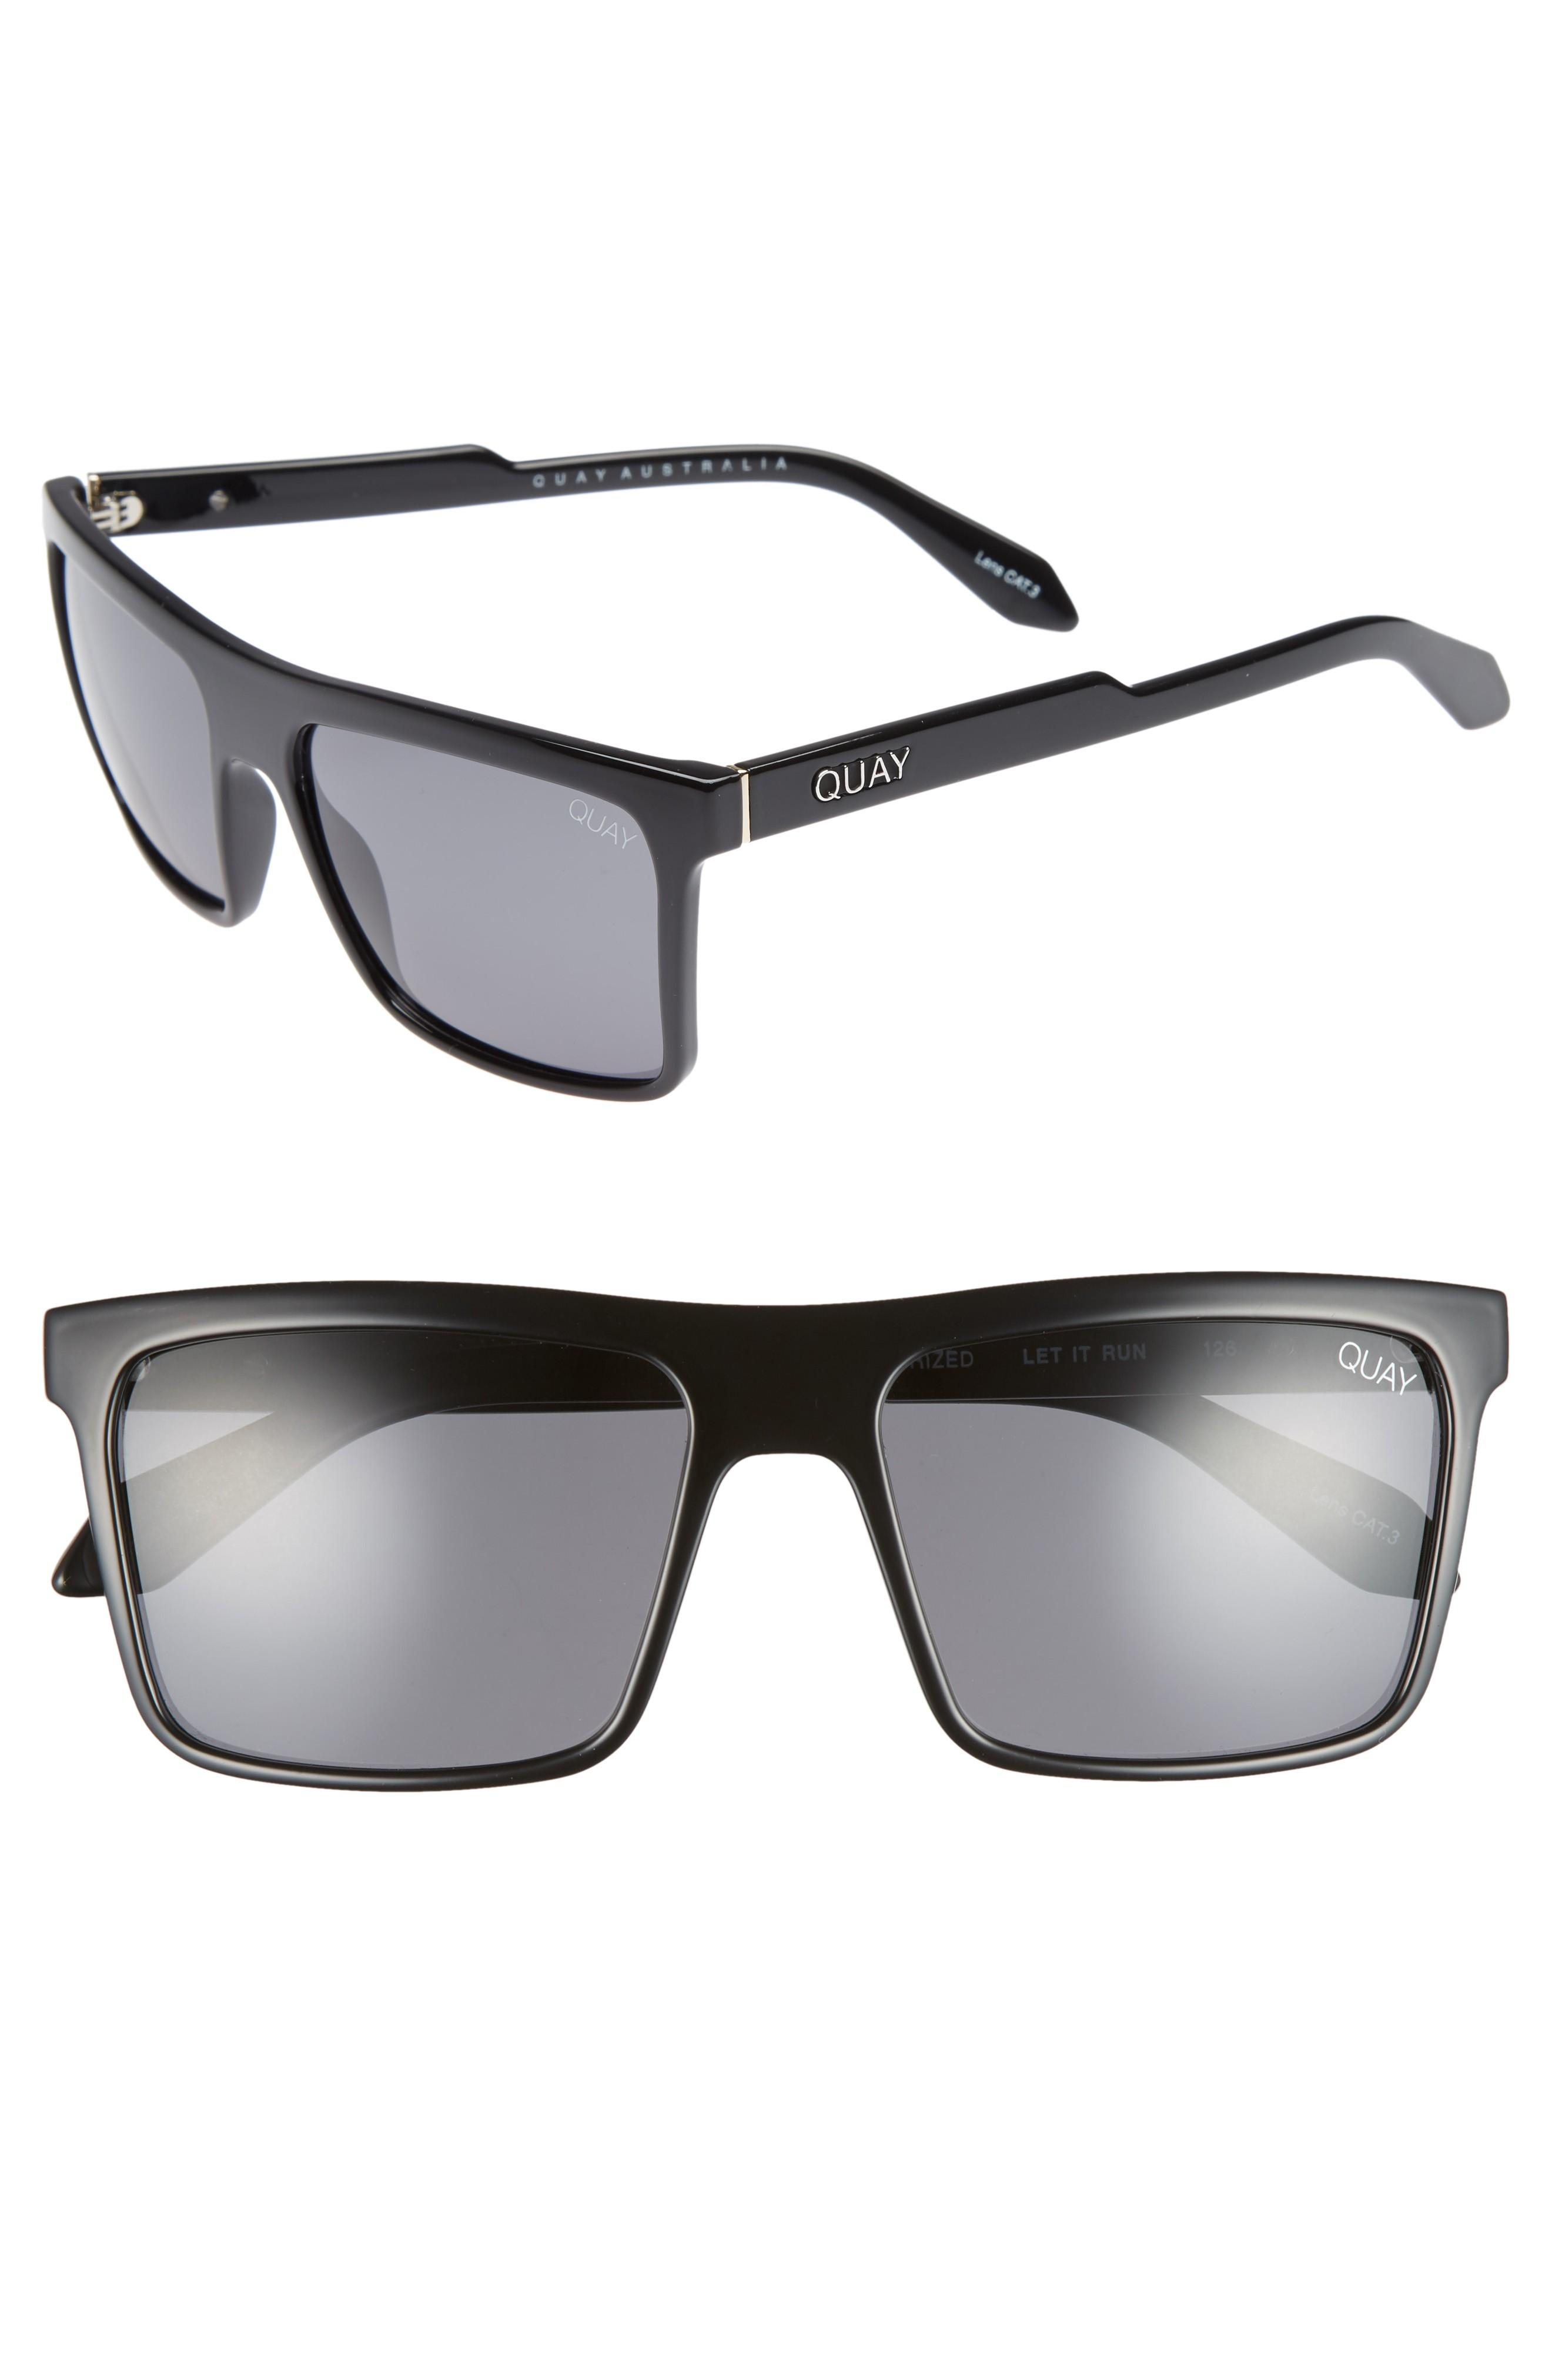 d0f9caccd80 ... the stylish squared-off shape of these contemporary shades with smoky  polarized lenses. Style Name  Quay Australia Let It Run 57Mm Polarized  Sunglasses.